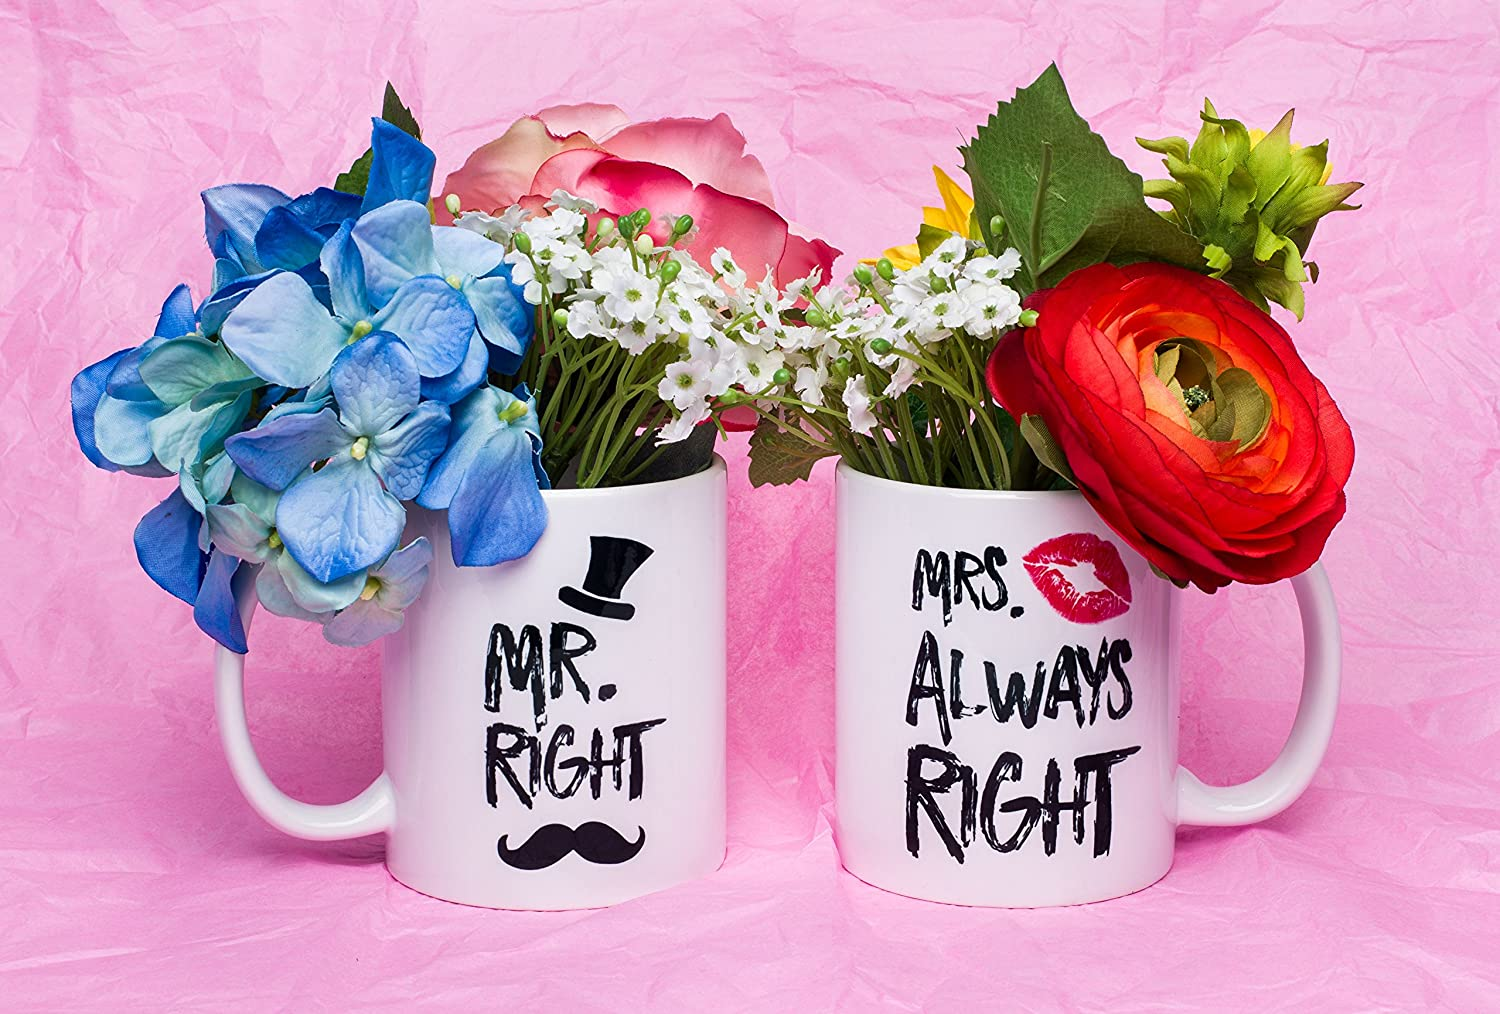 Amazon.com: Funny Wedding Gifts - Mr. Right and Mrs. Always Right ...